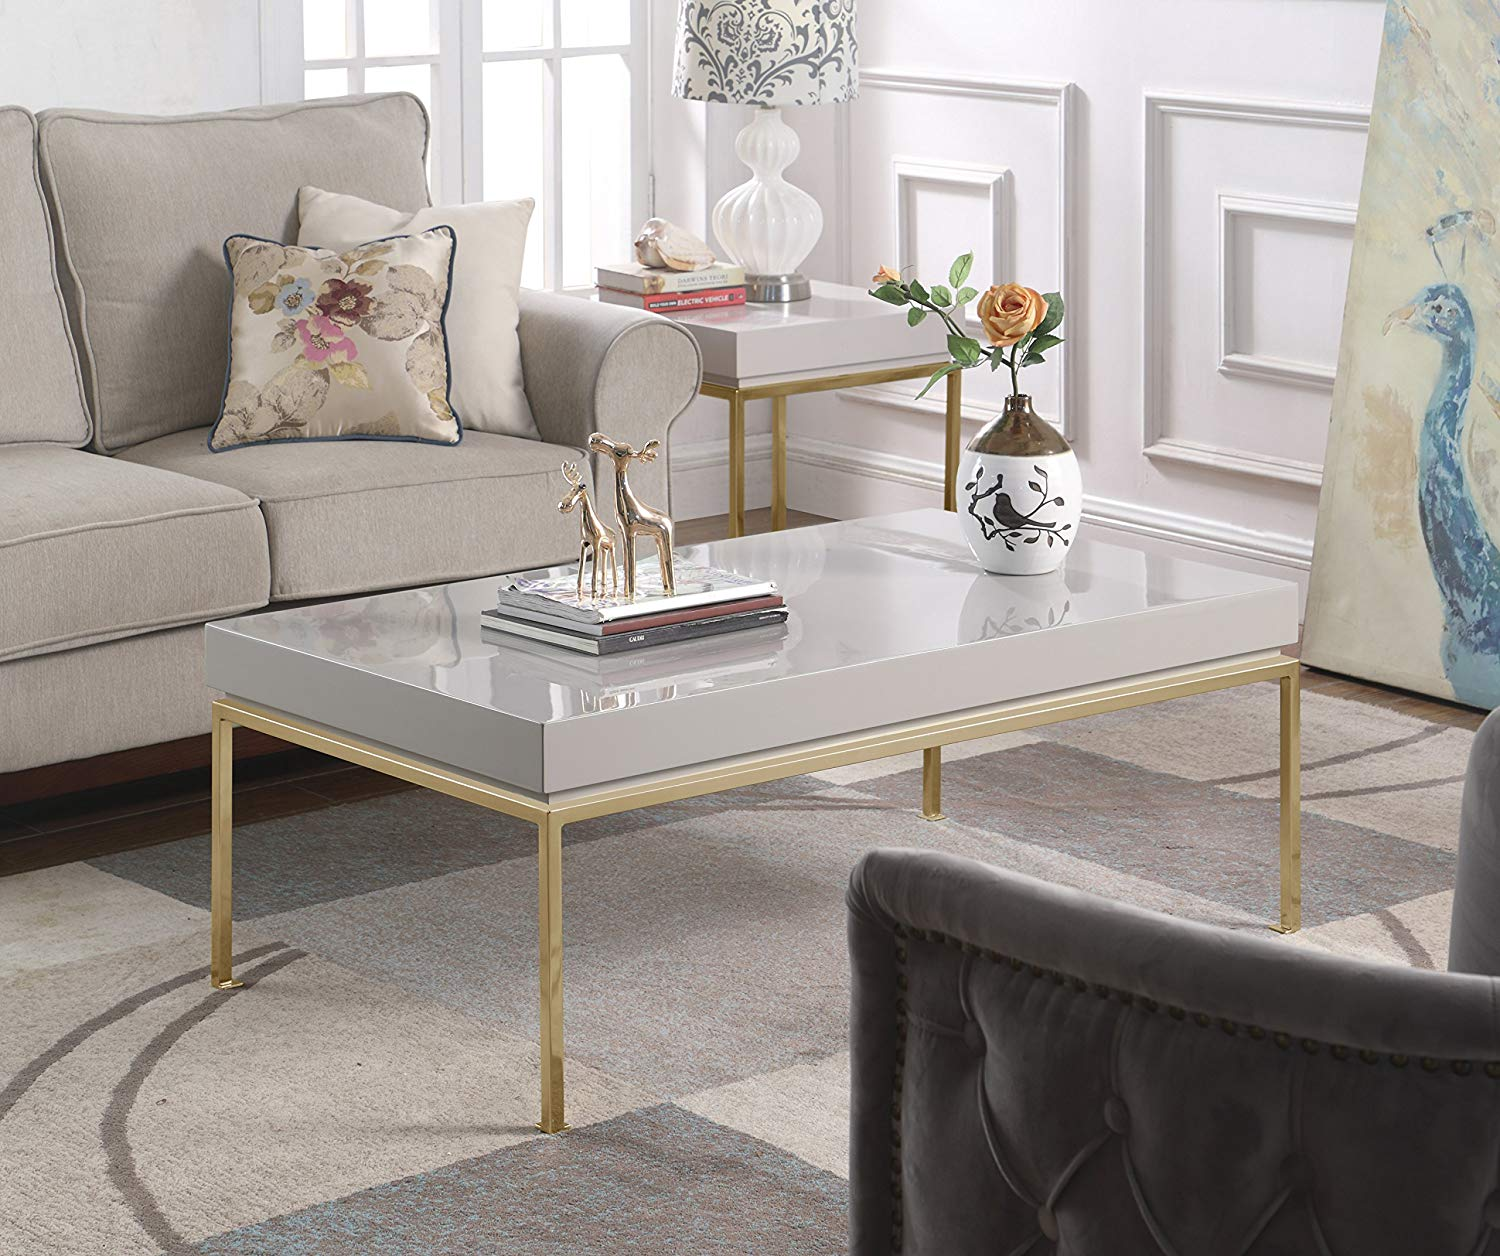 Iconic Home Alcinda Center Coffee Table Rectangular Frame High Sheen Lacquer Finish Top Gold Plated Metal Legs, Modern Contemporary, Grey